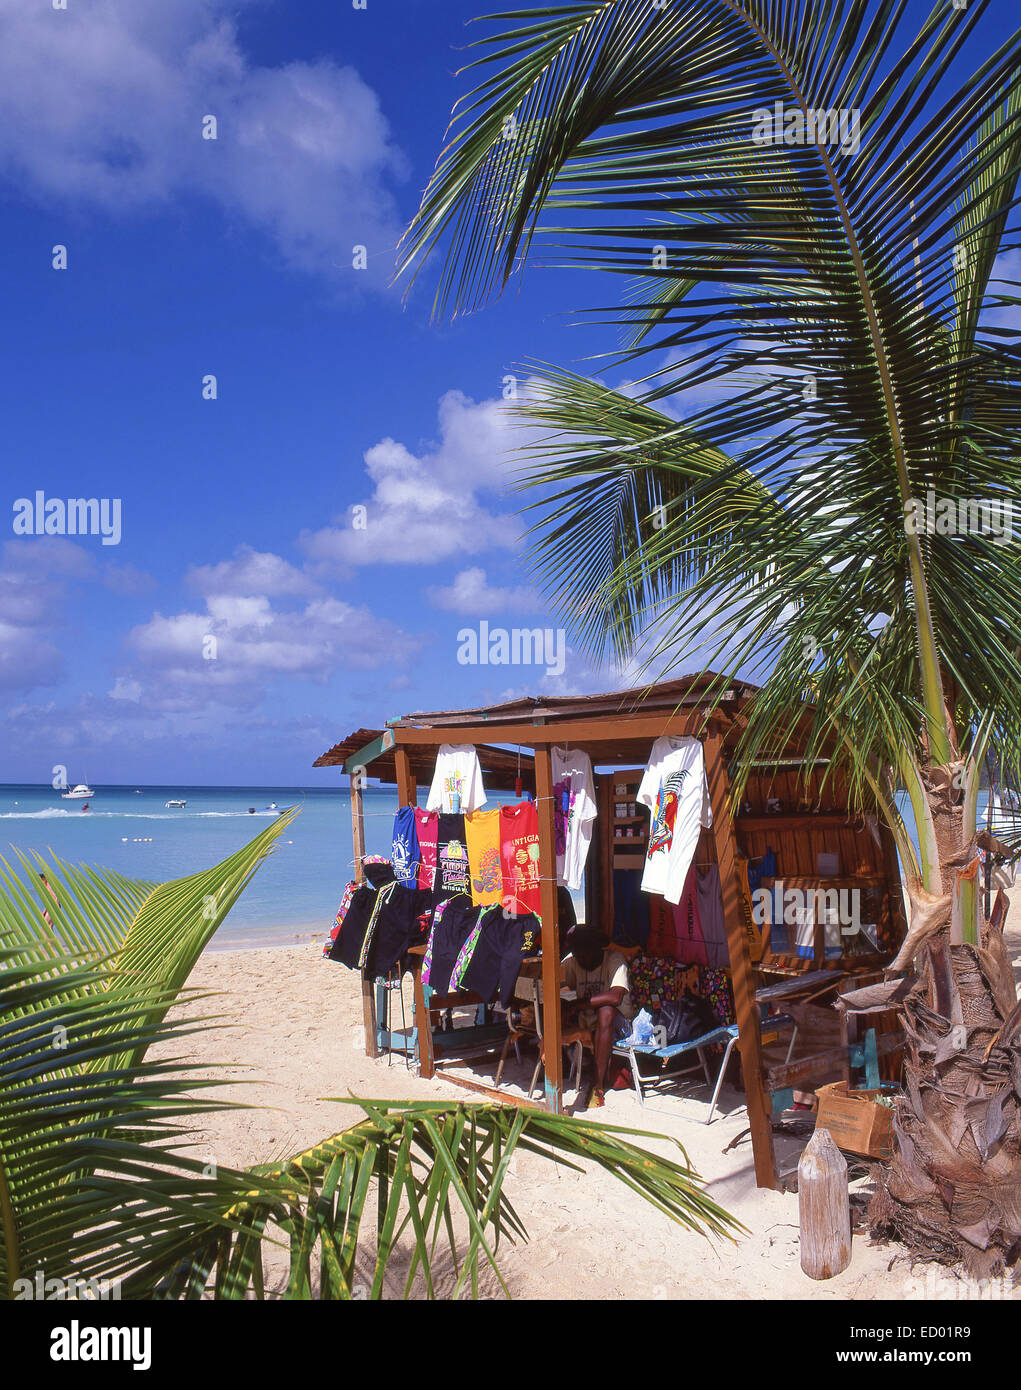 Vêtements de plage, de décrochage Jolly Beach Resort, paroisse de Saint Mary's, Antigua, Antigua et Photo Stock